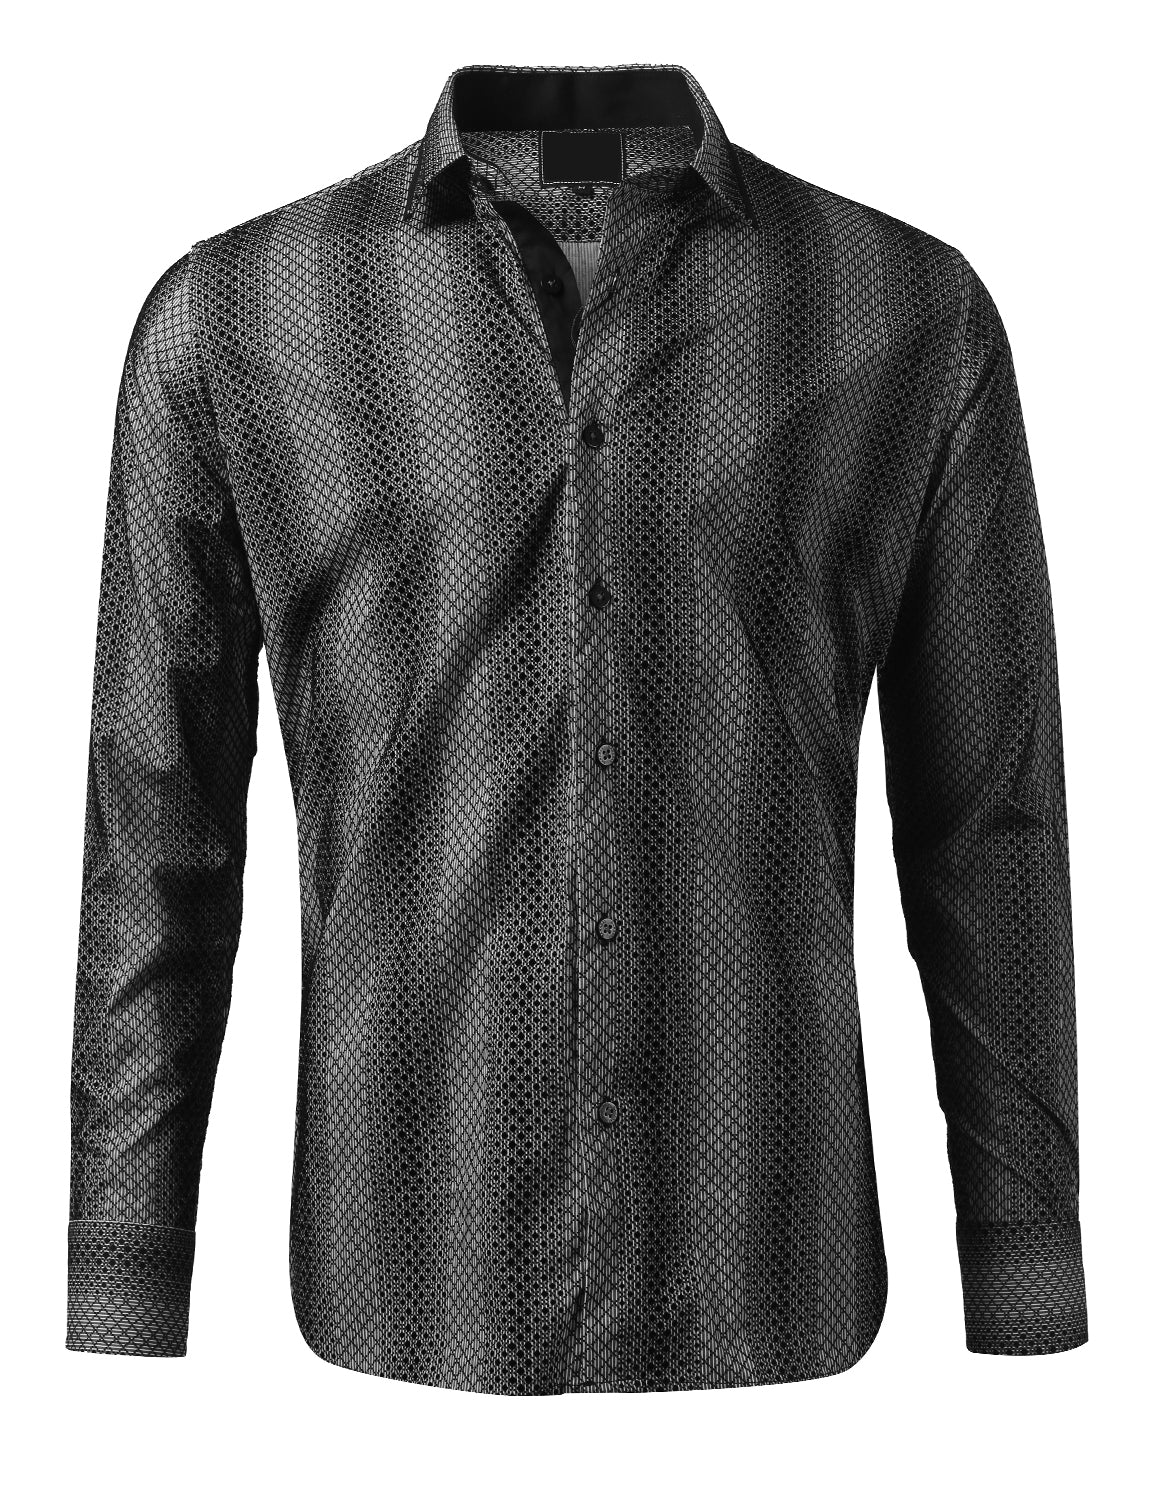 Casual Slim Fit Velvet Patterned Button Down Shirt - MONDAYSUIT